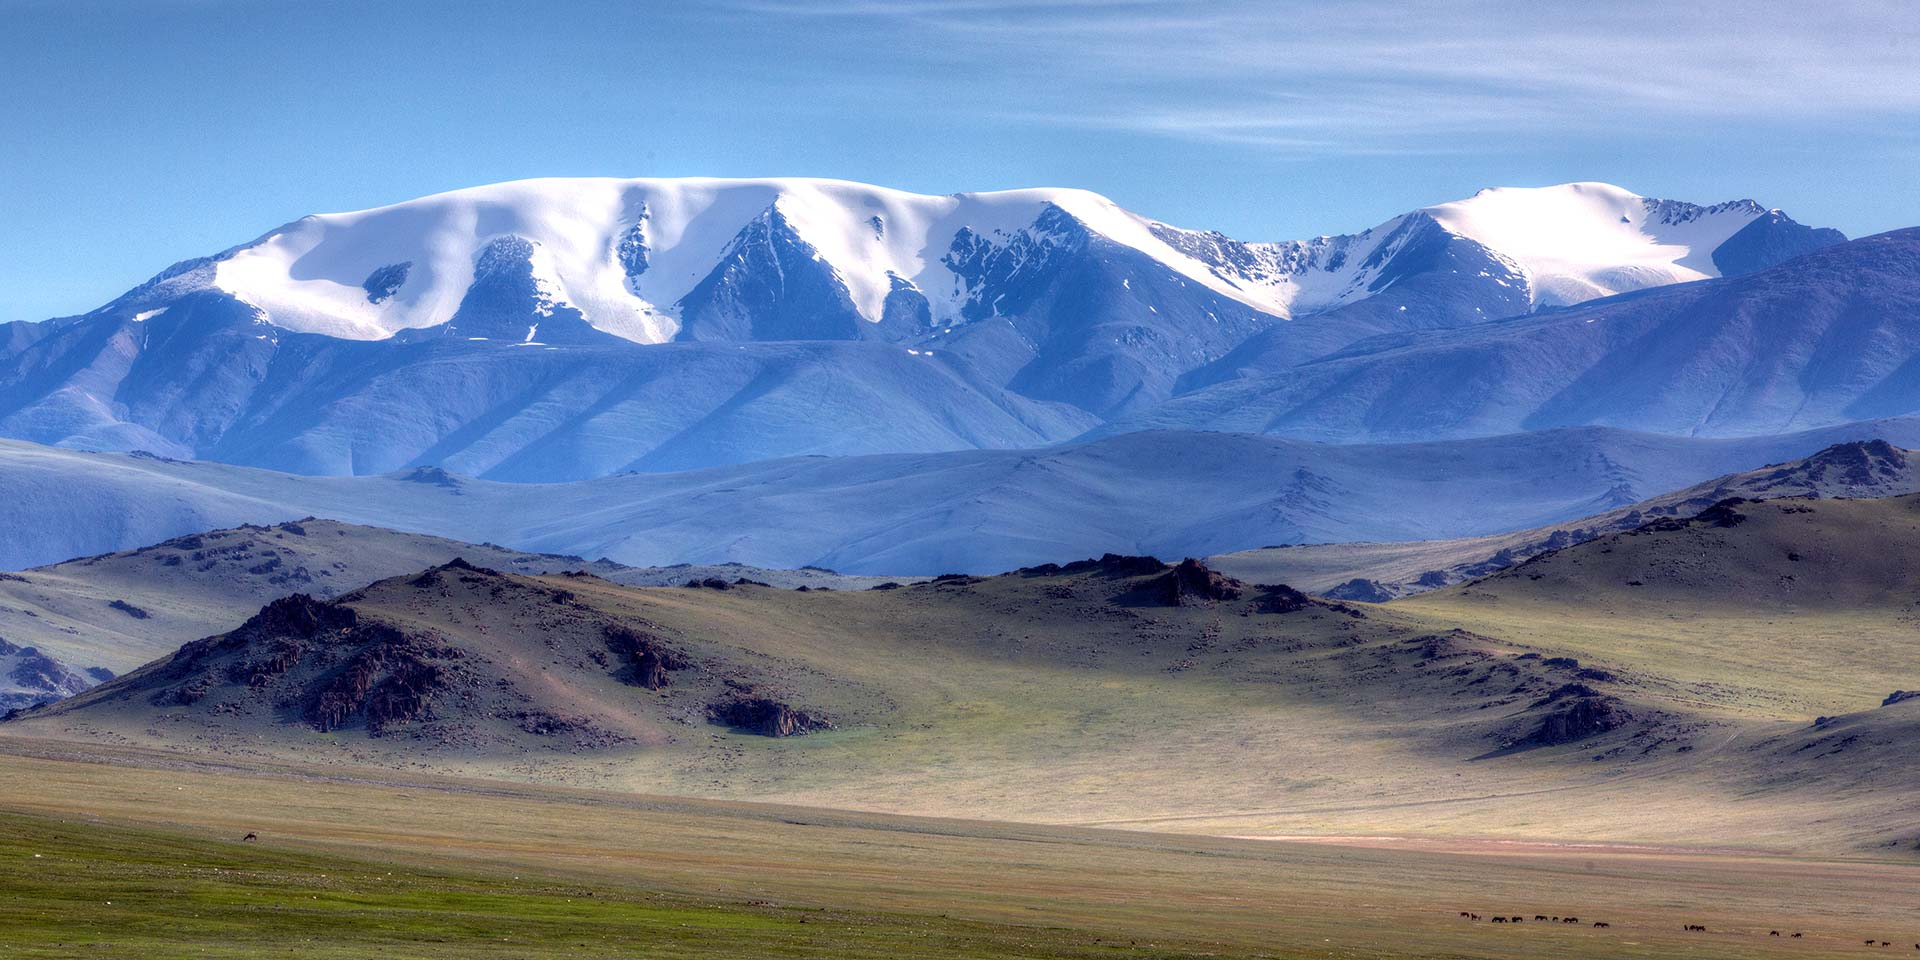 Cutting the Cord: Finding Peace in the Mongolian Altai